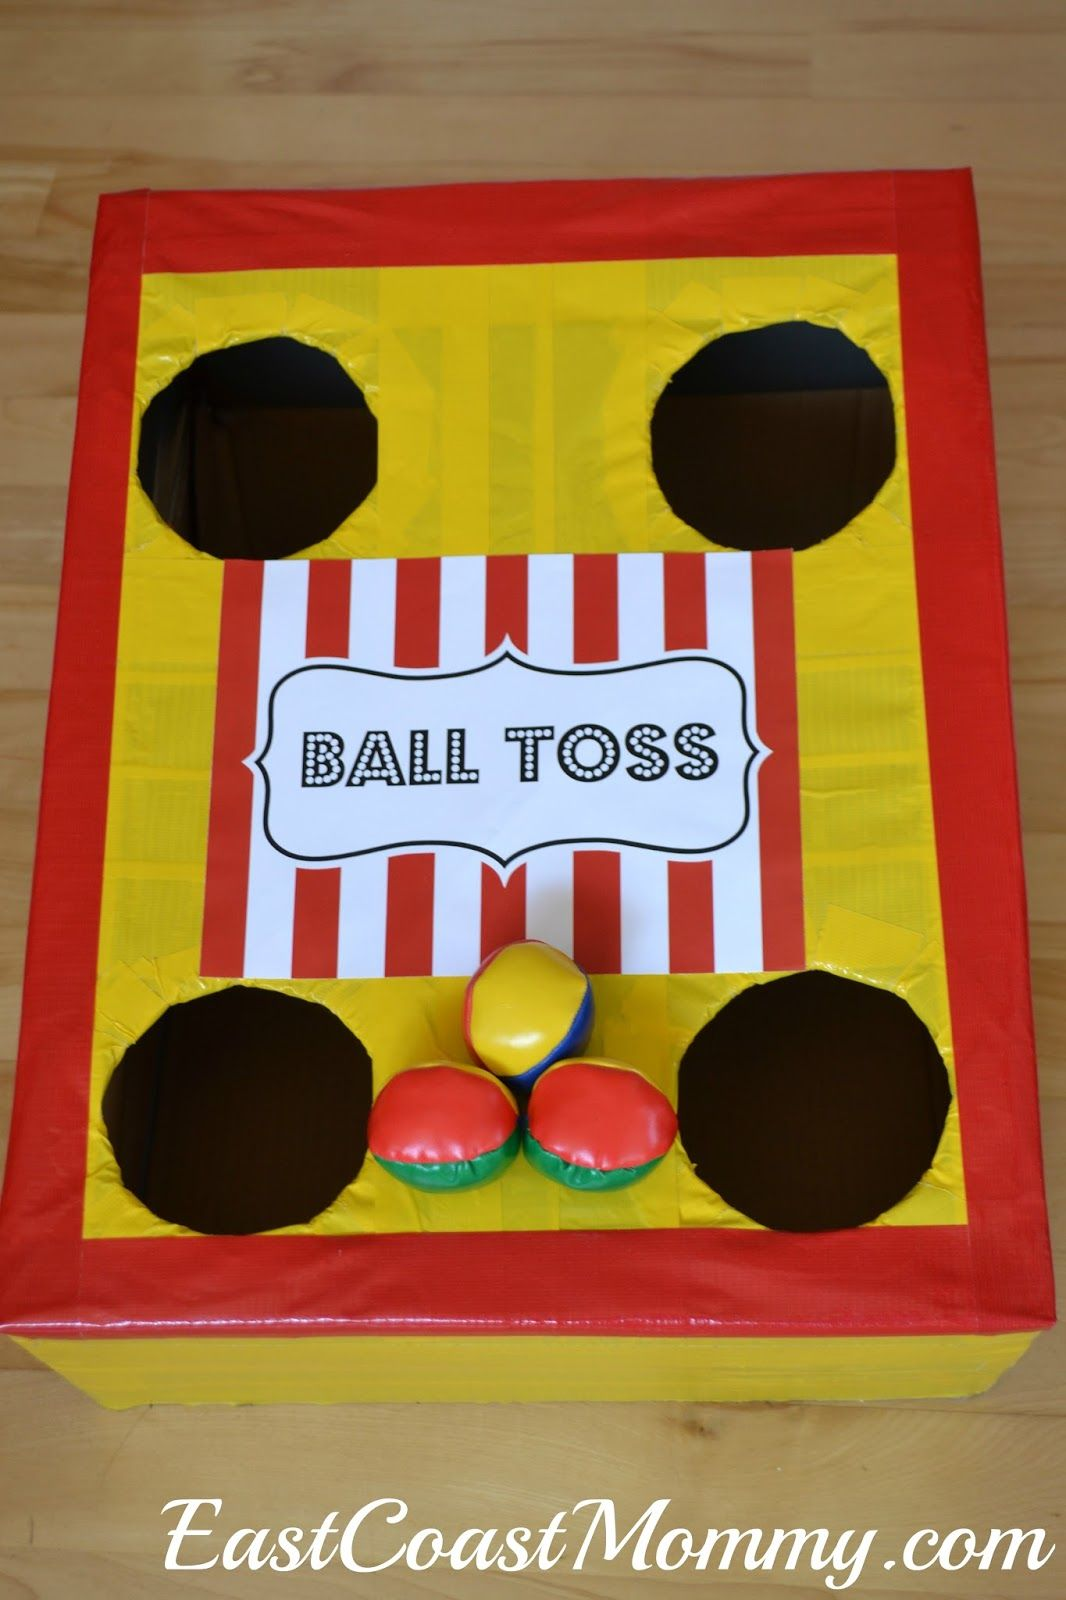 East Coast Mommy Carnival Games And Activities Diy Carnival Games